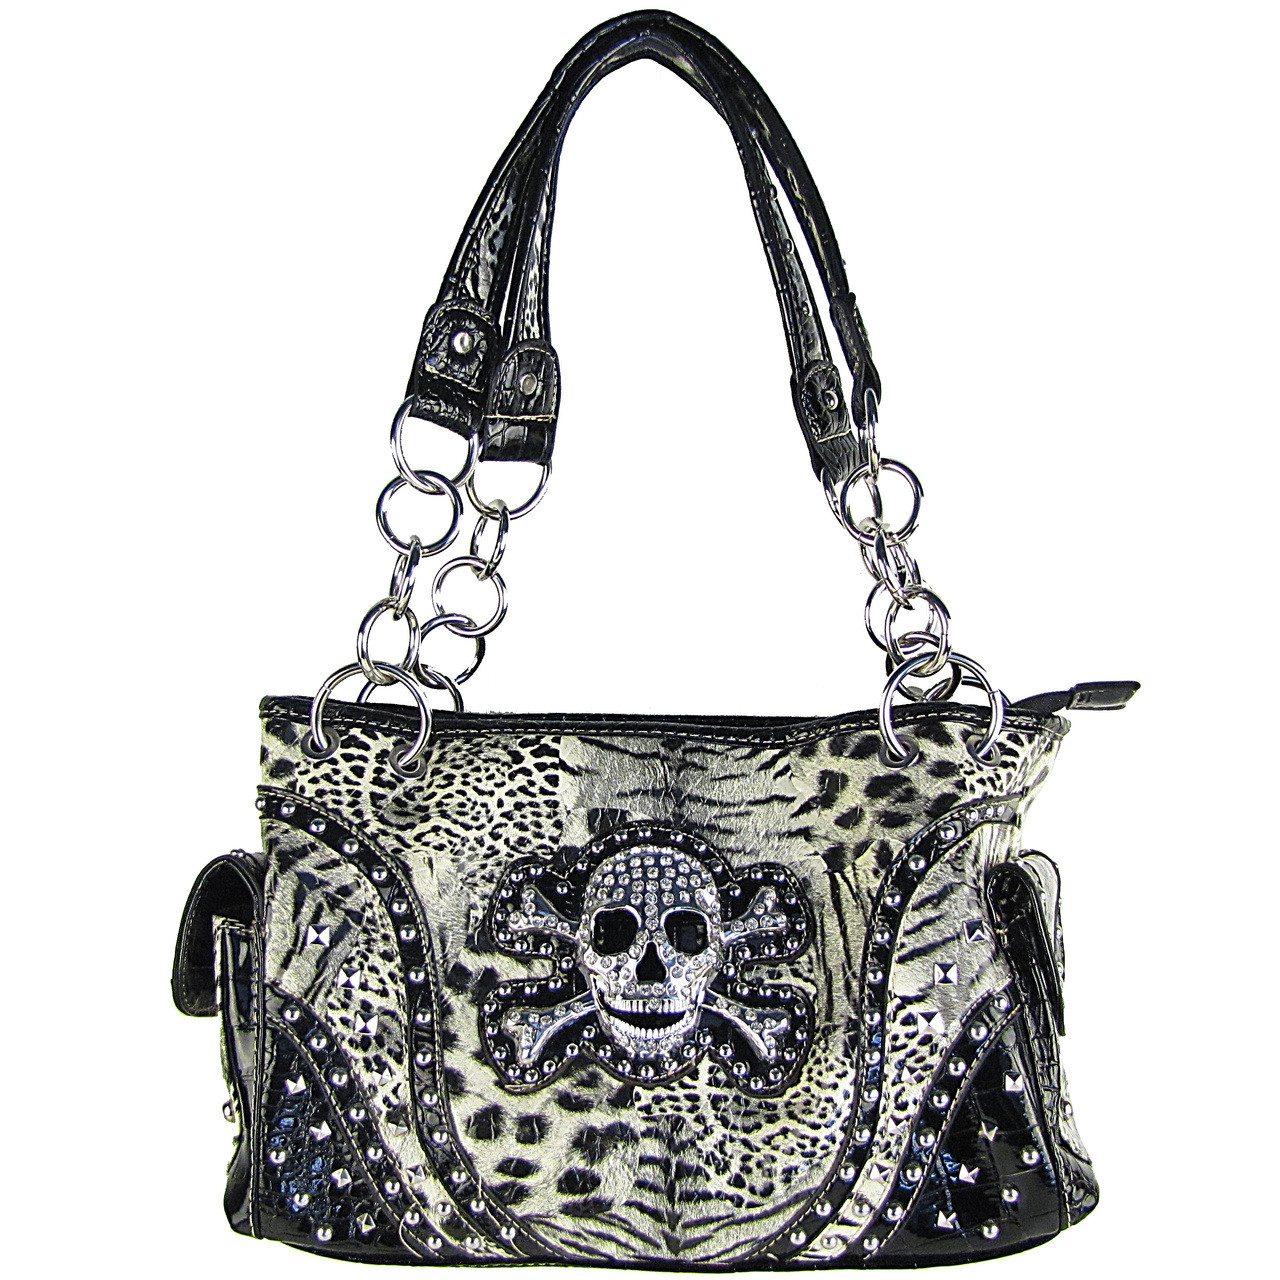 BLACK LEAPORD SKULL LOOK SHOULDER HANDBAG HB1-CHF0060BLK